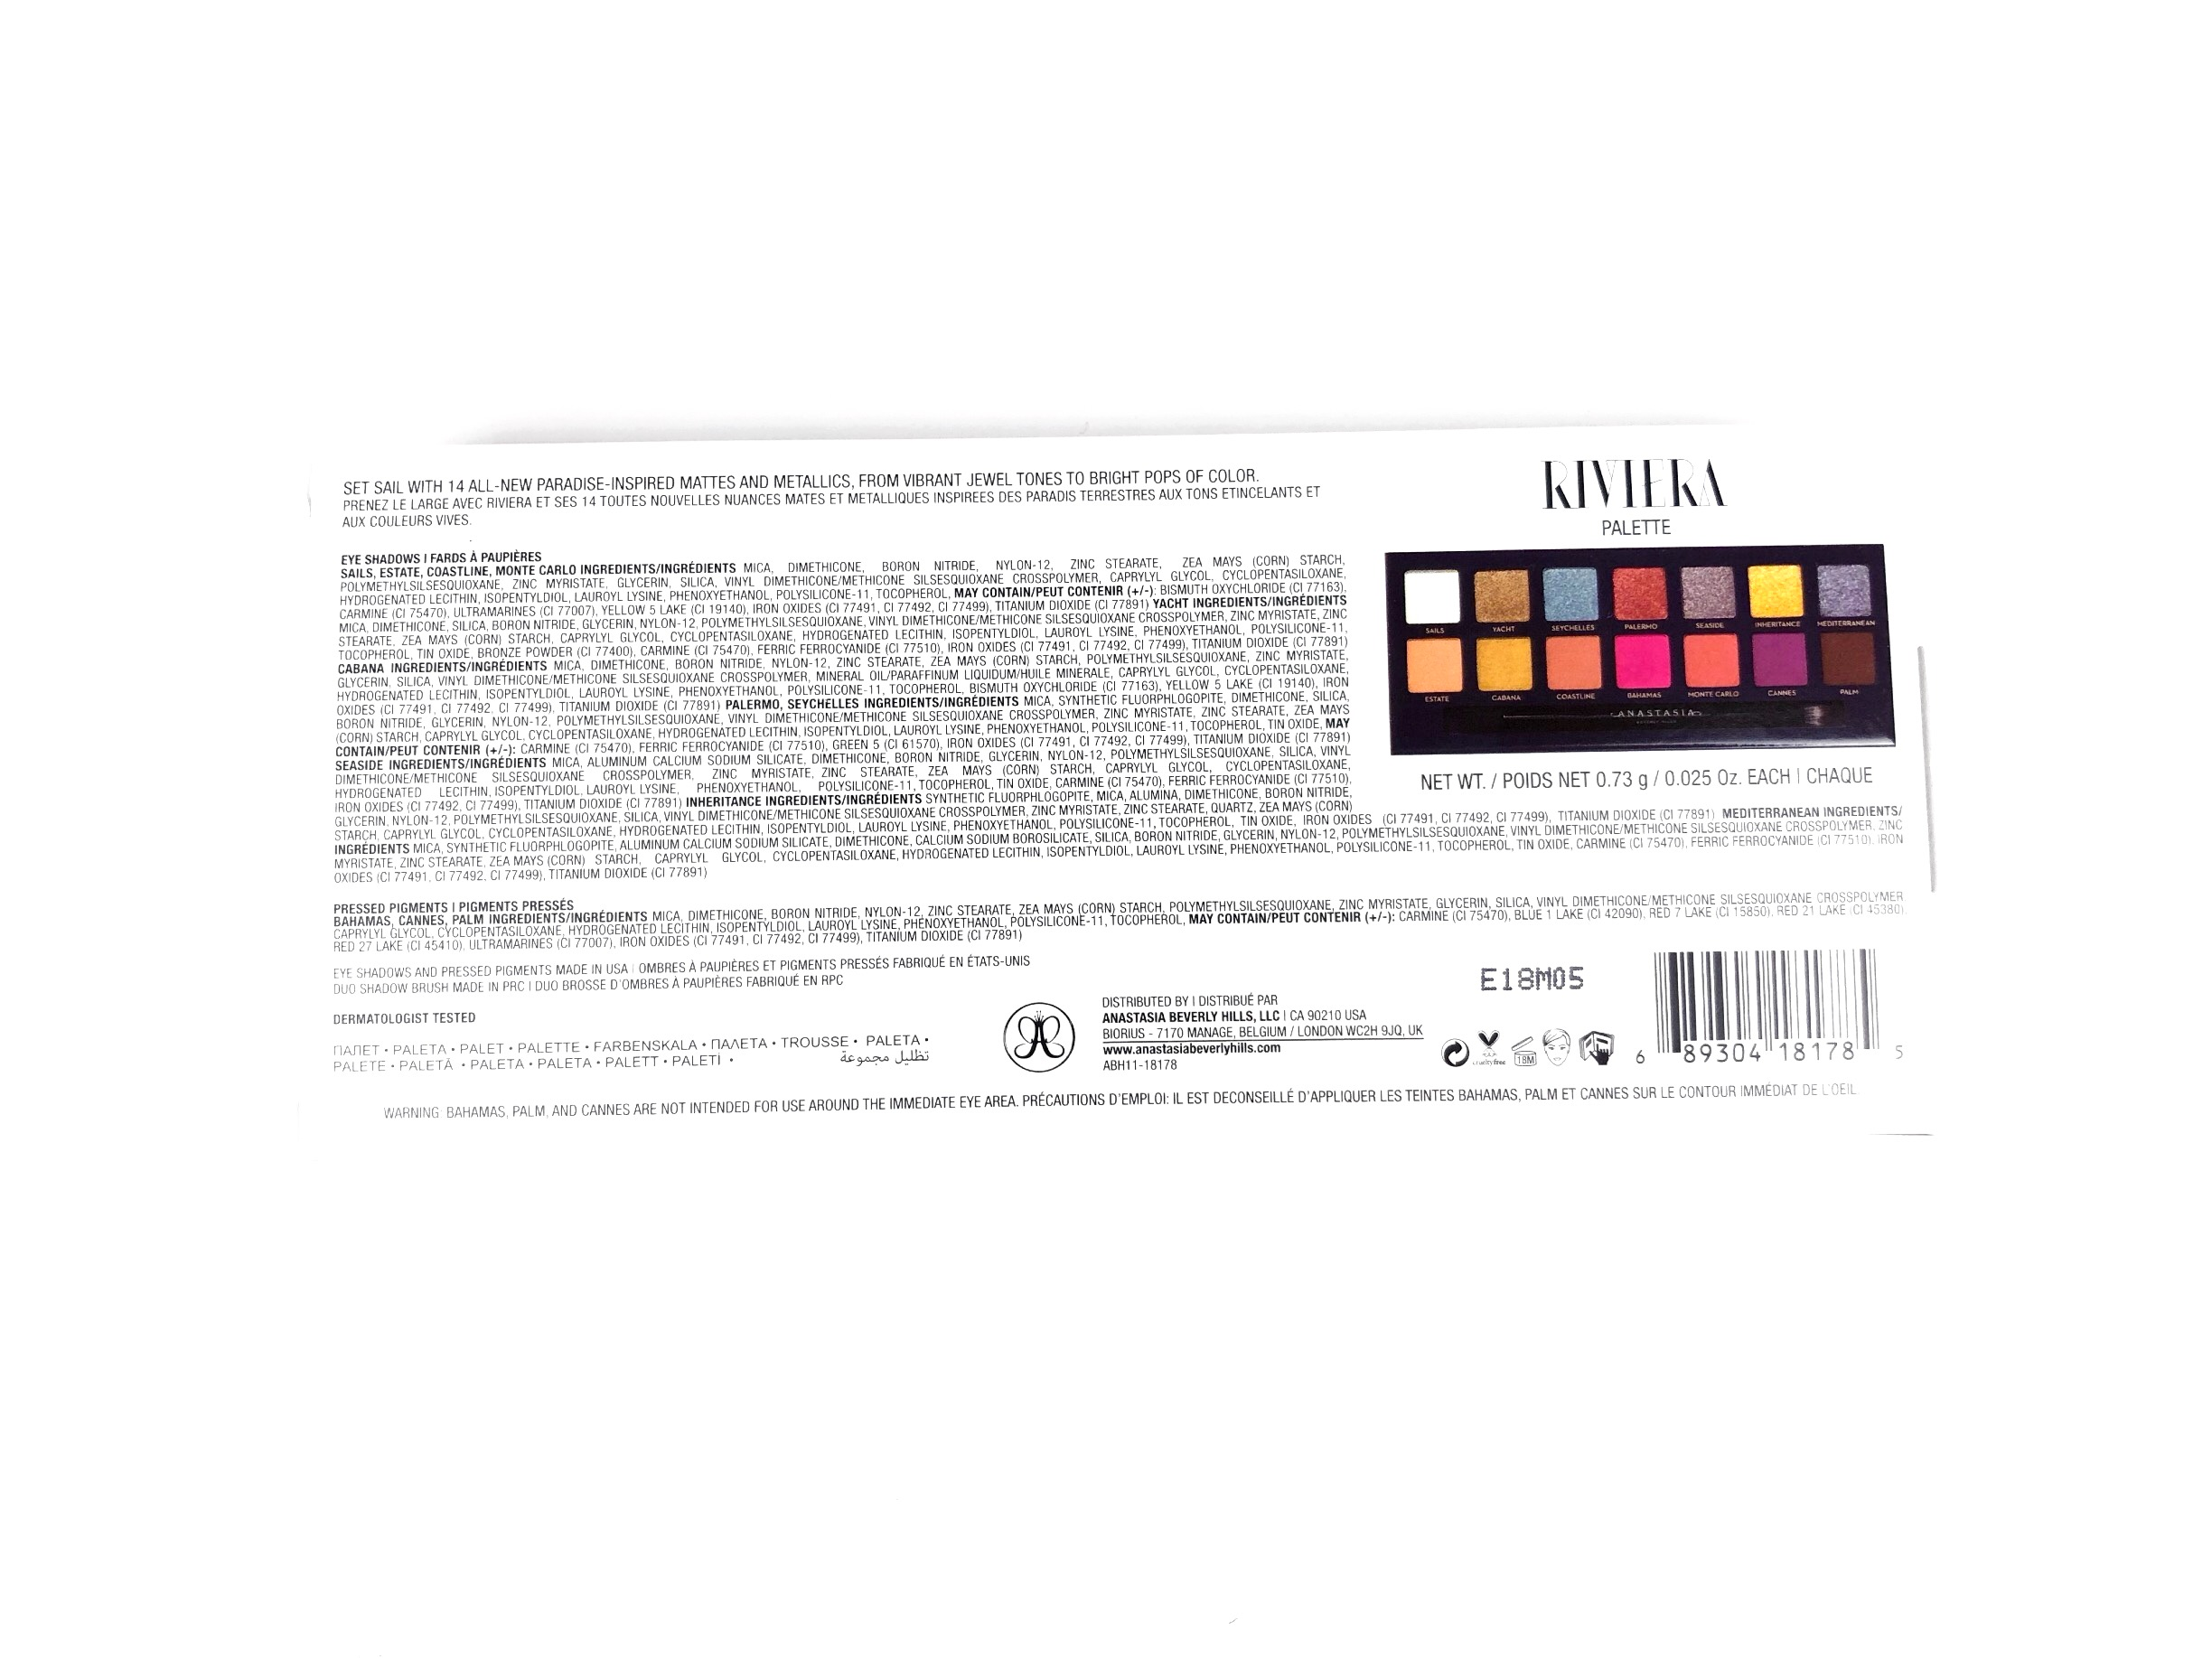 Packaging for the Anastasia Beverly Hills Riviera Palette